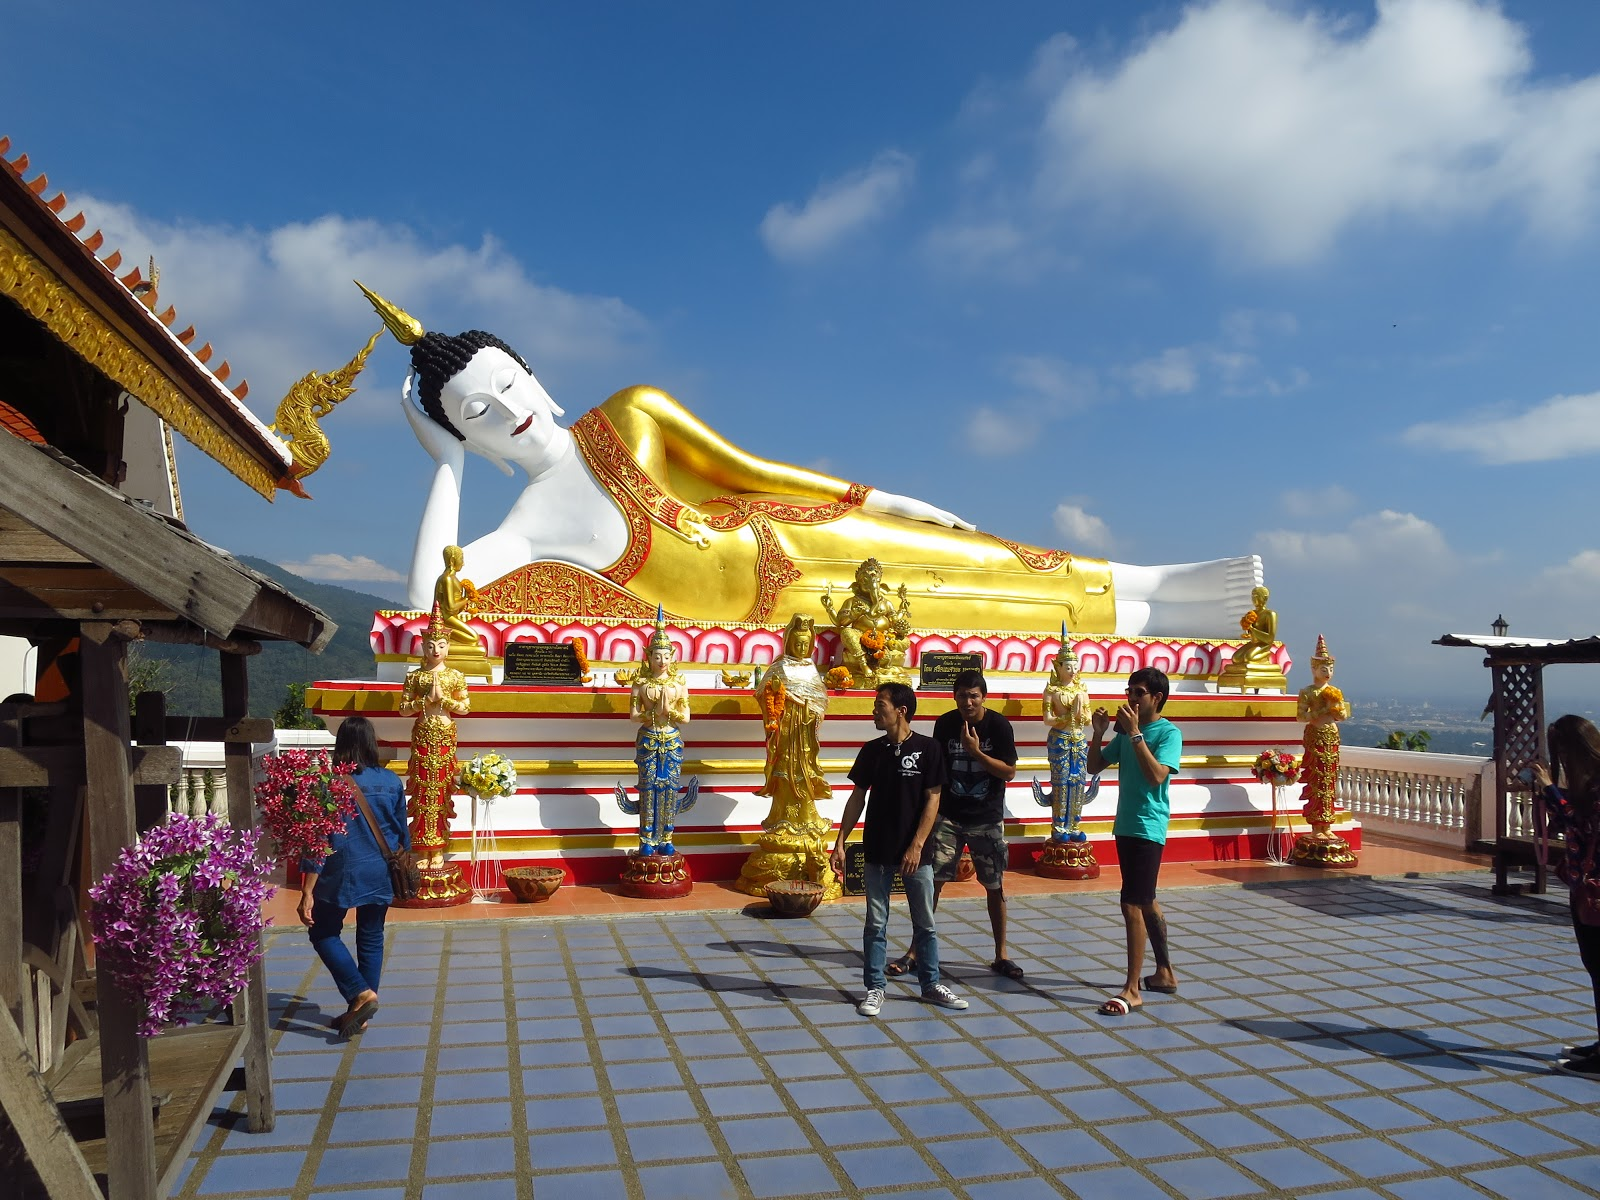 Smokin\' Chokin\' and Chowing with the King: Eating BIG in Chiang Mai